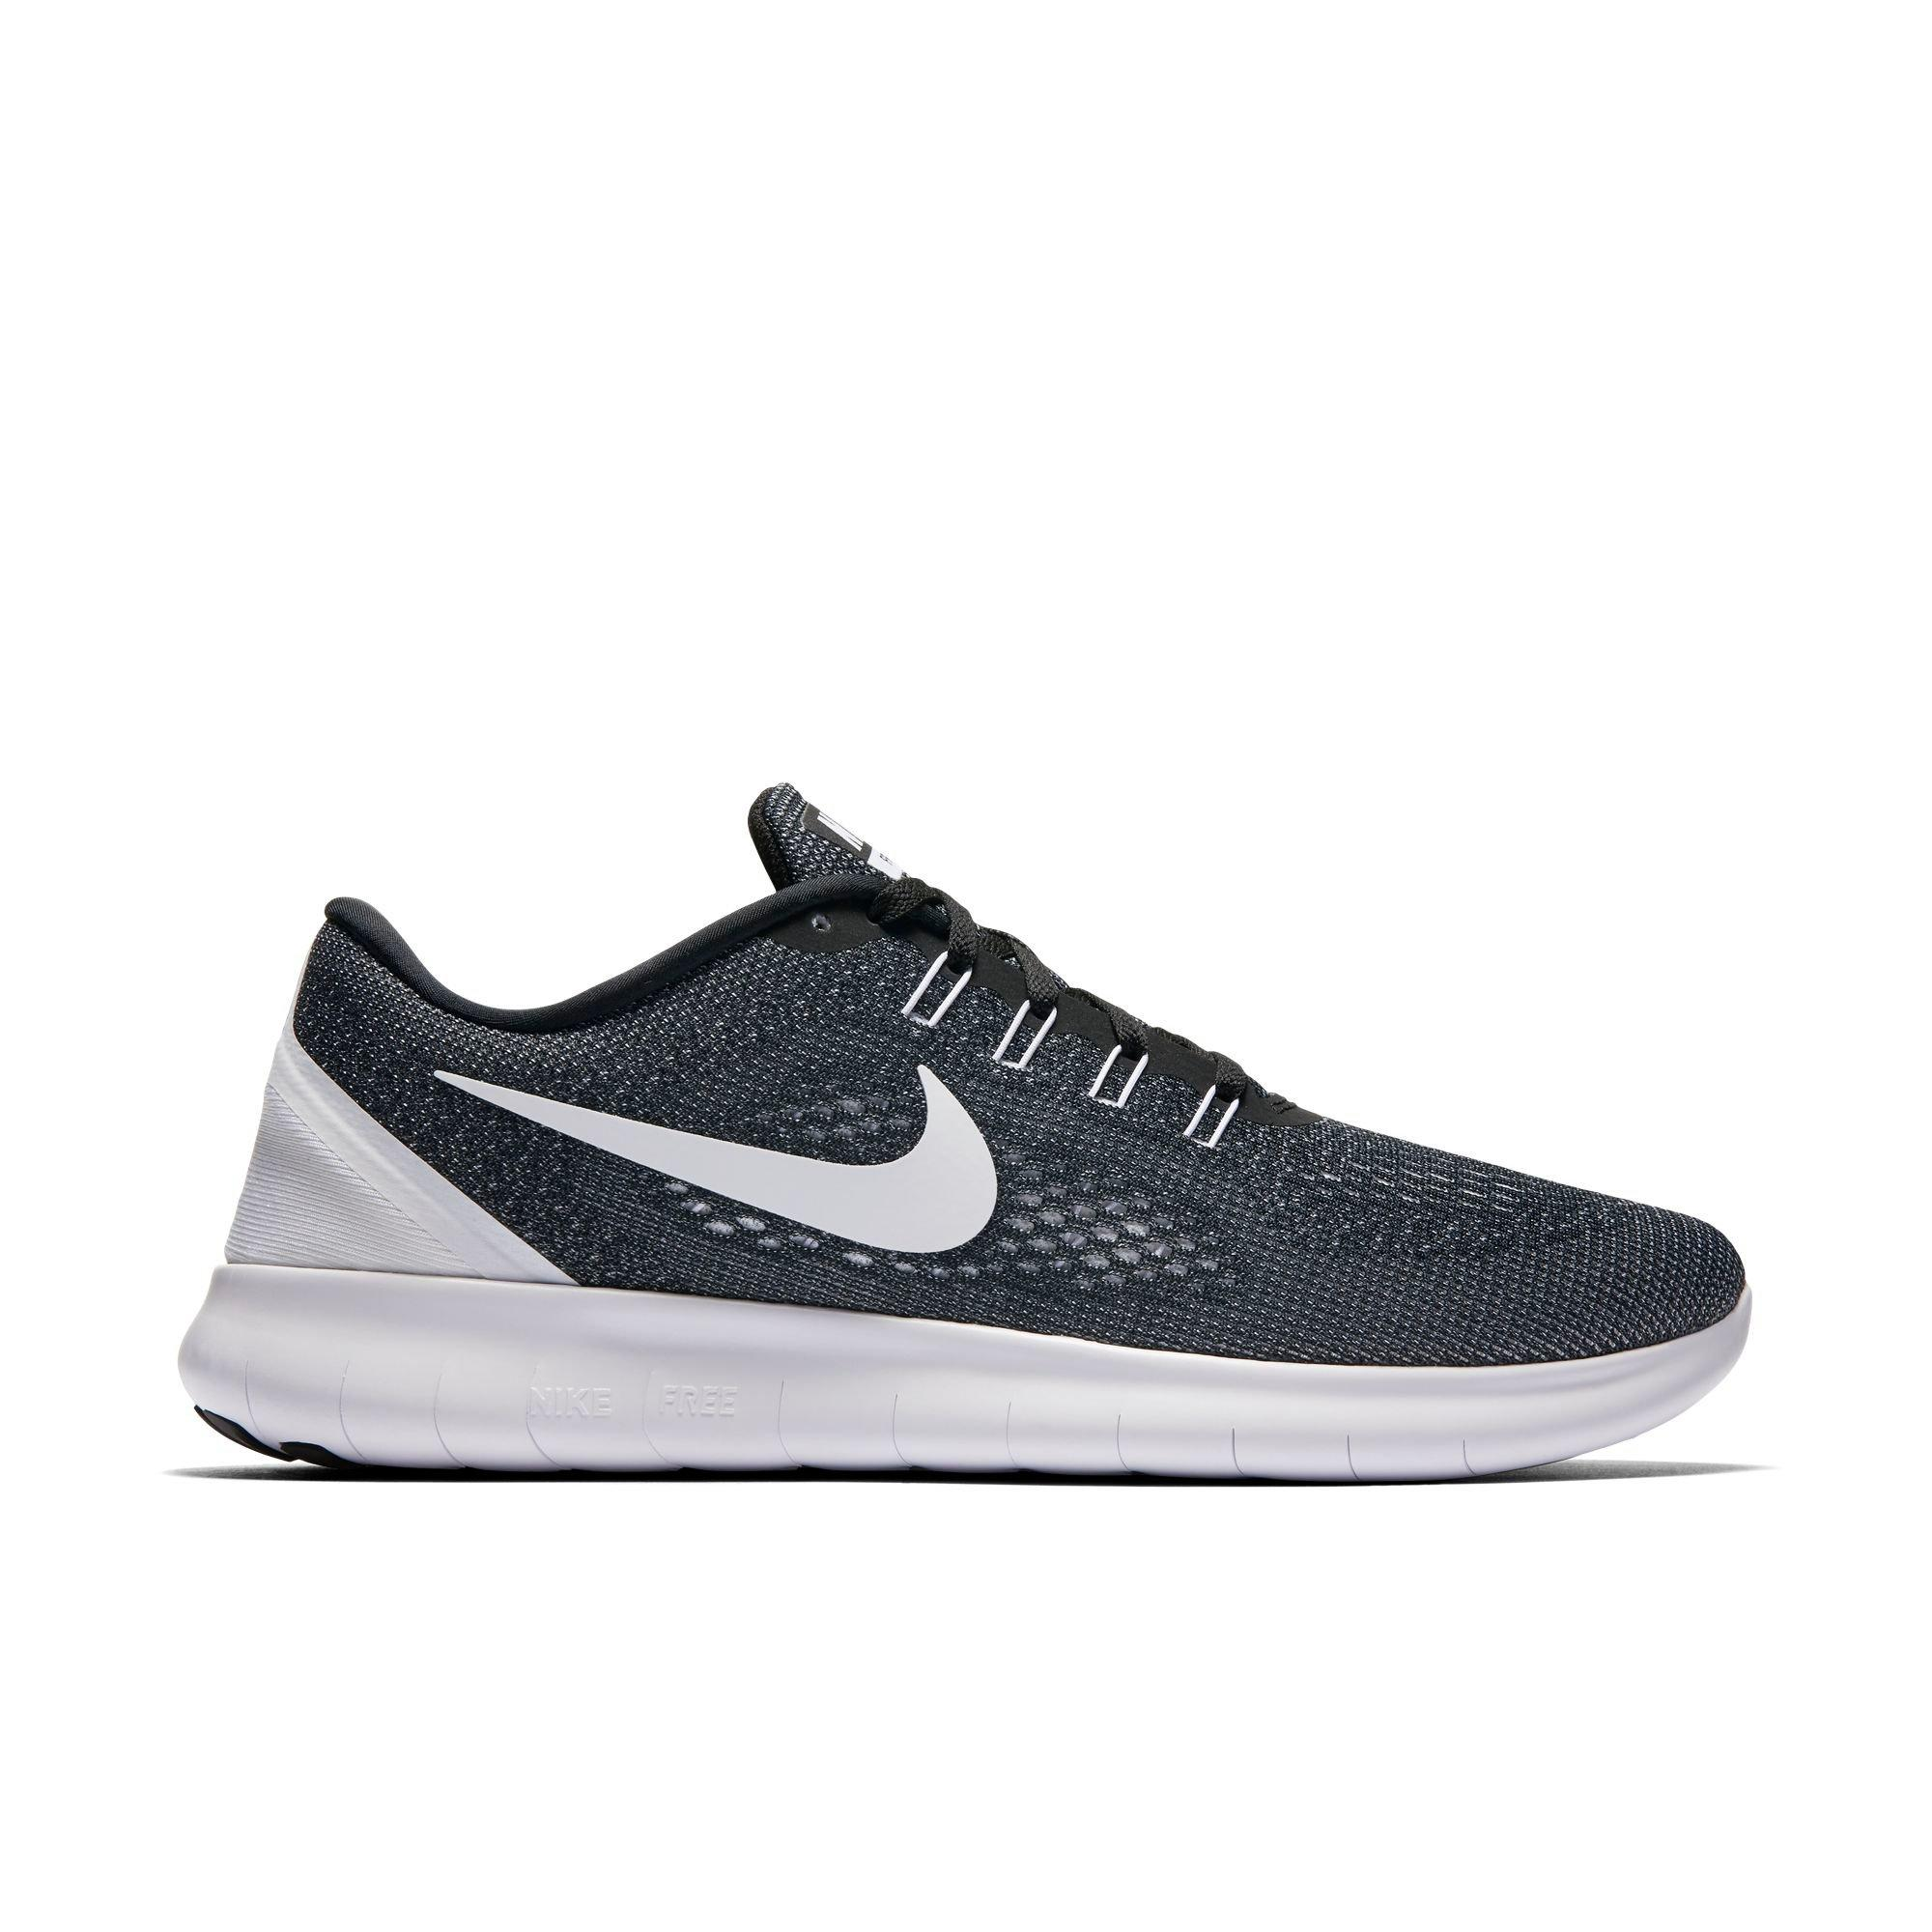 nike shoes white and black high top. free shipping no minimum. 5 out of stars. read reviews. (1). nike rn flyknit men\u0027s running shoe shoes white and black high top